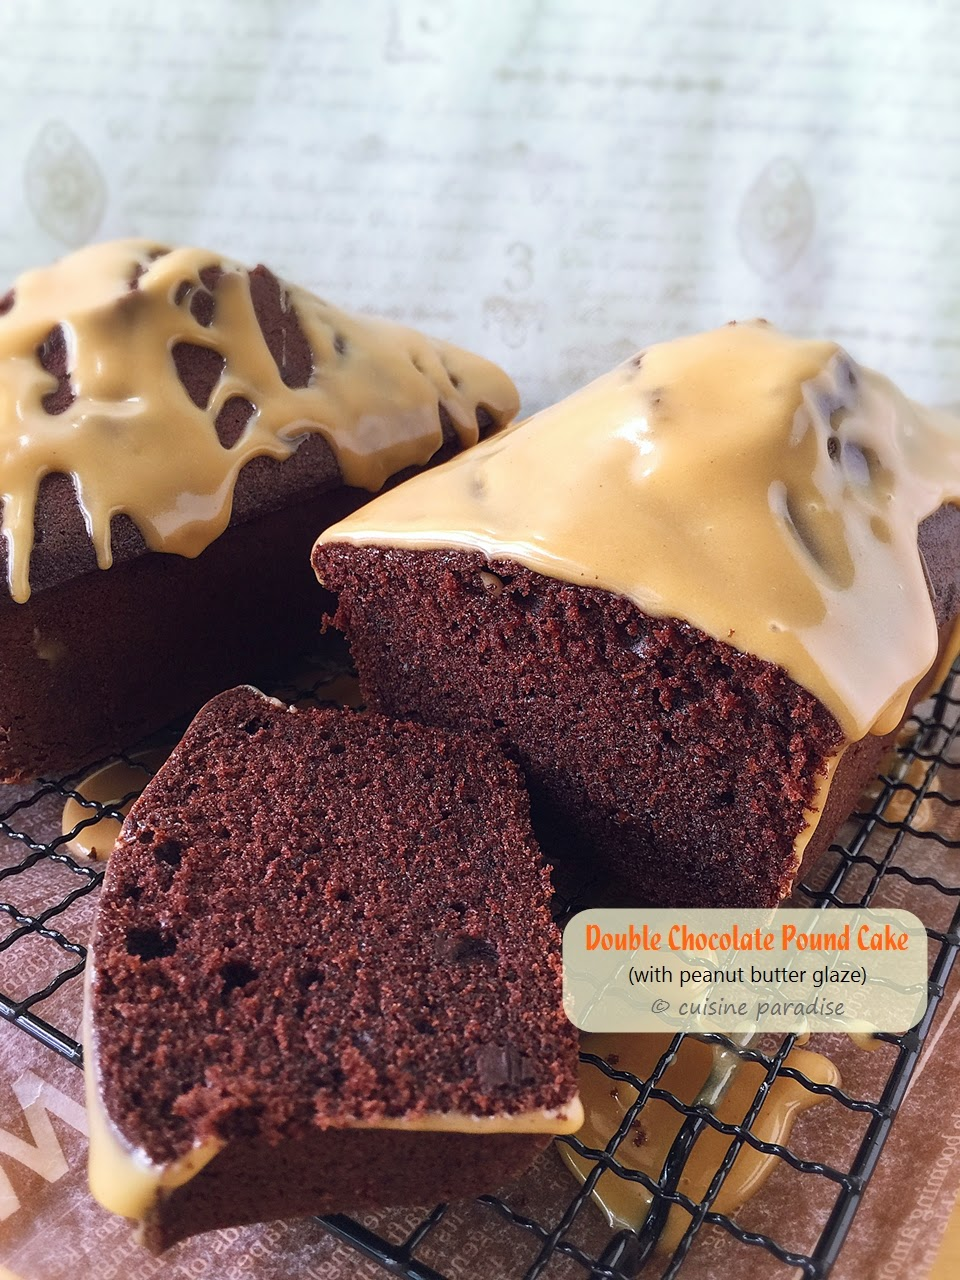 ... And Travel: Double Chocolate Pound Cake with Peanut Butter Glaze